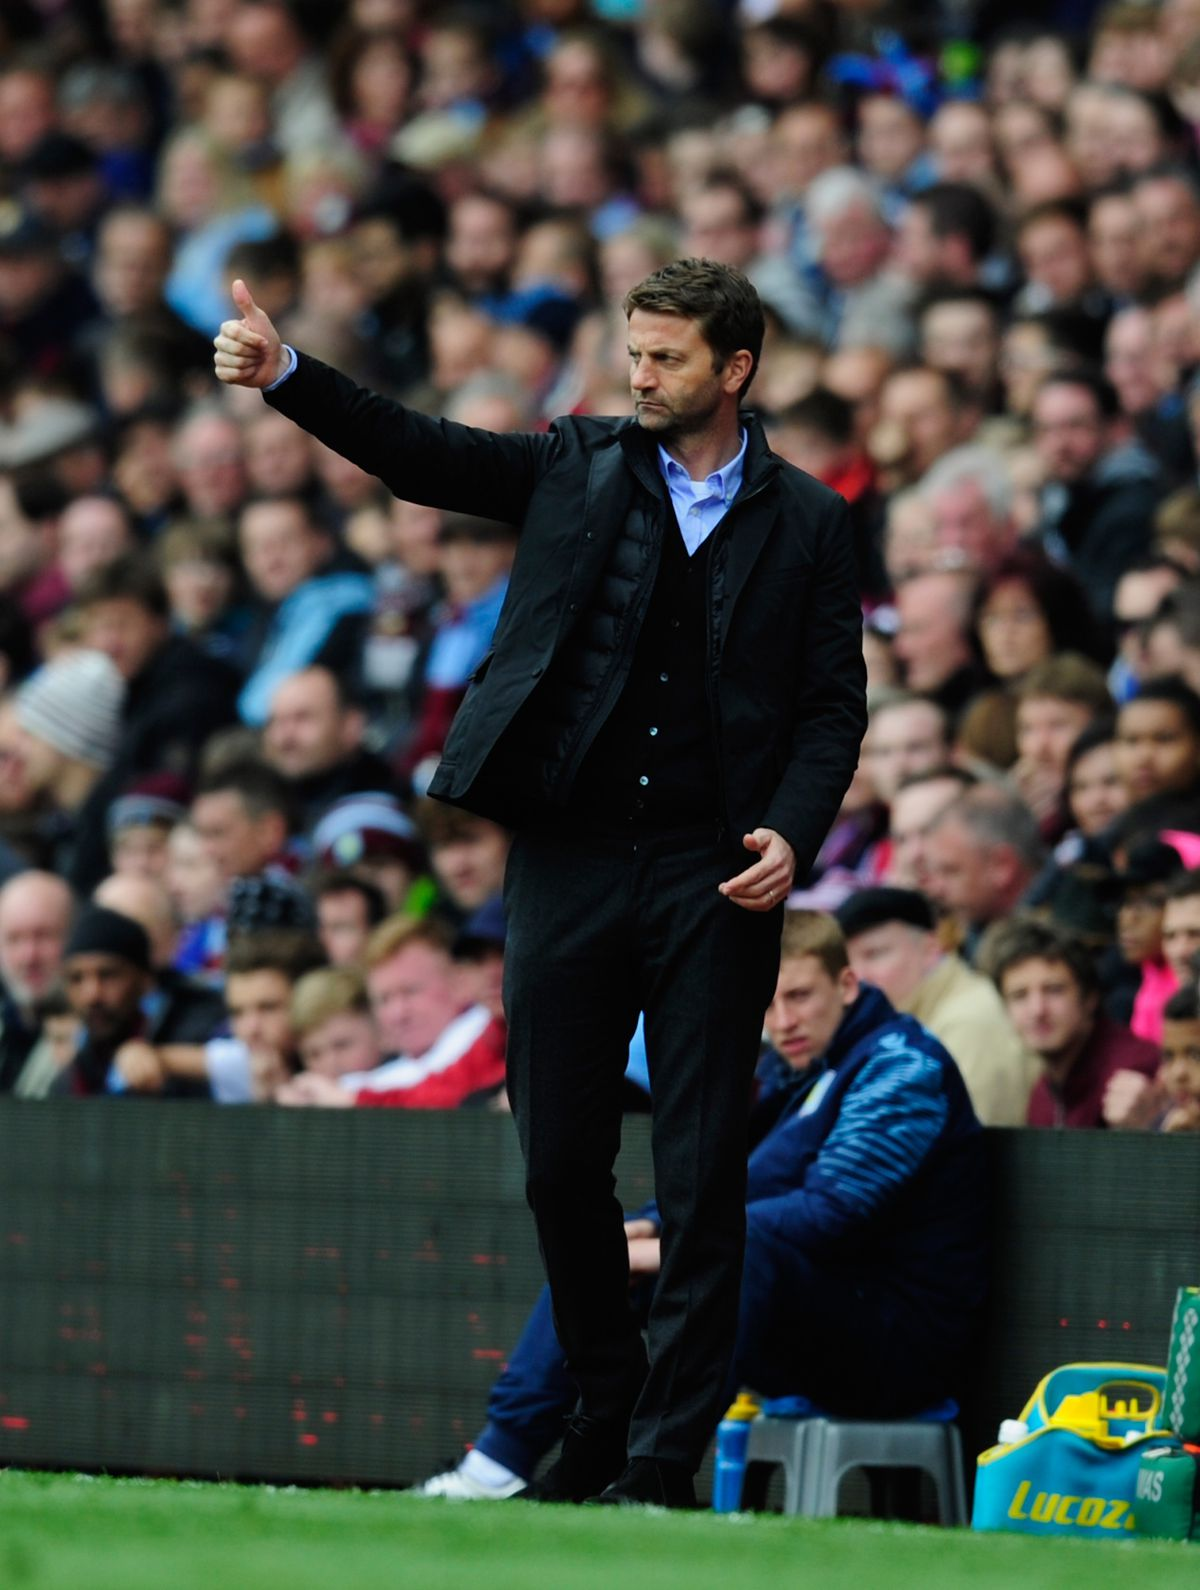 BIRMINGHAM, ENGLAND - MAY 09:  Villa manager Tim Sherwood reacts during the Barclays Premier League match between Aston Villa and West Ham United  at Villa Park on May 9, 2015 in Birmingham, England.  (Photo by Stu Forster/Getty Images)